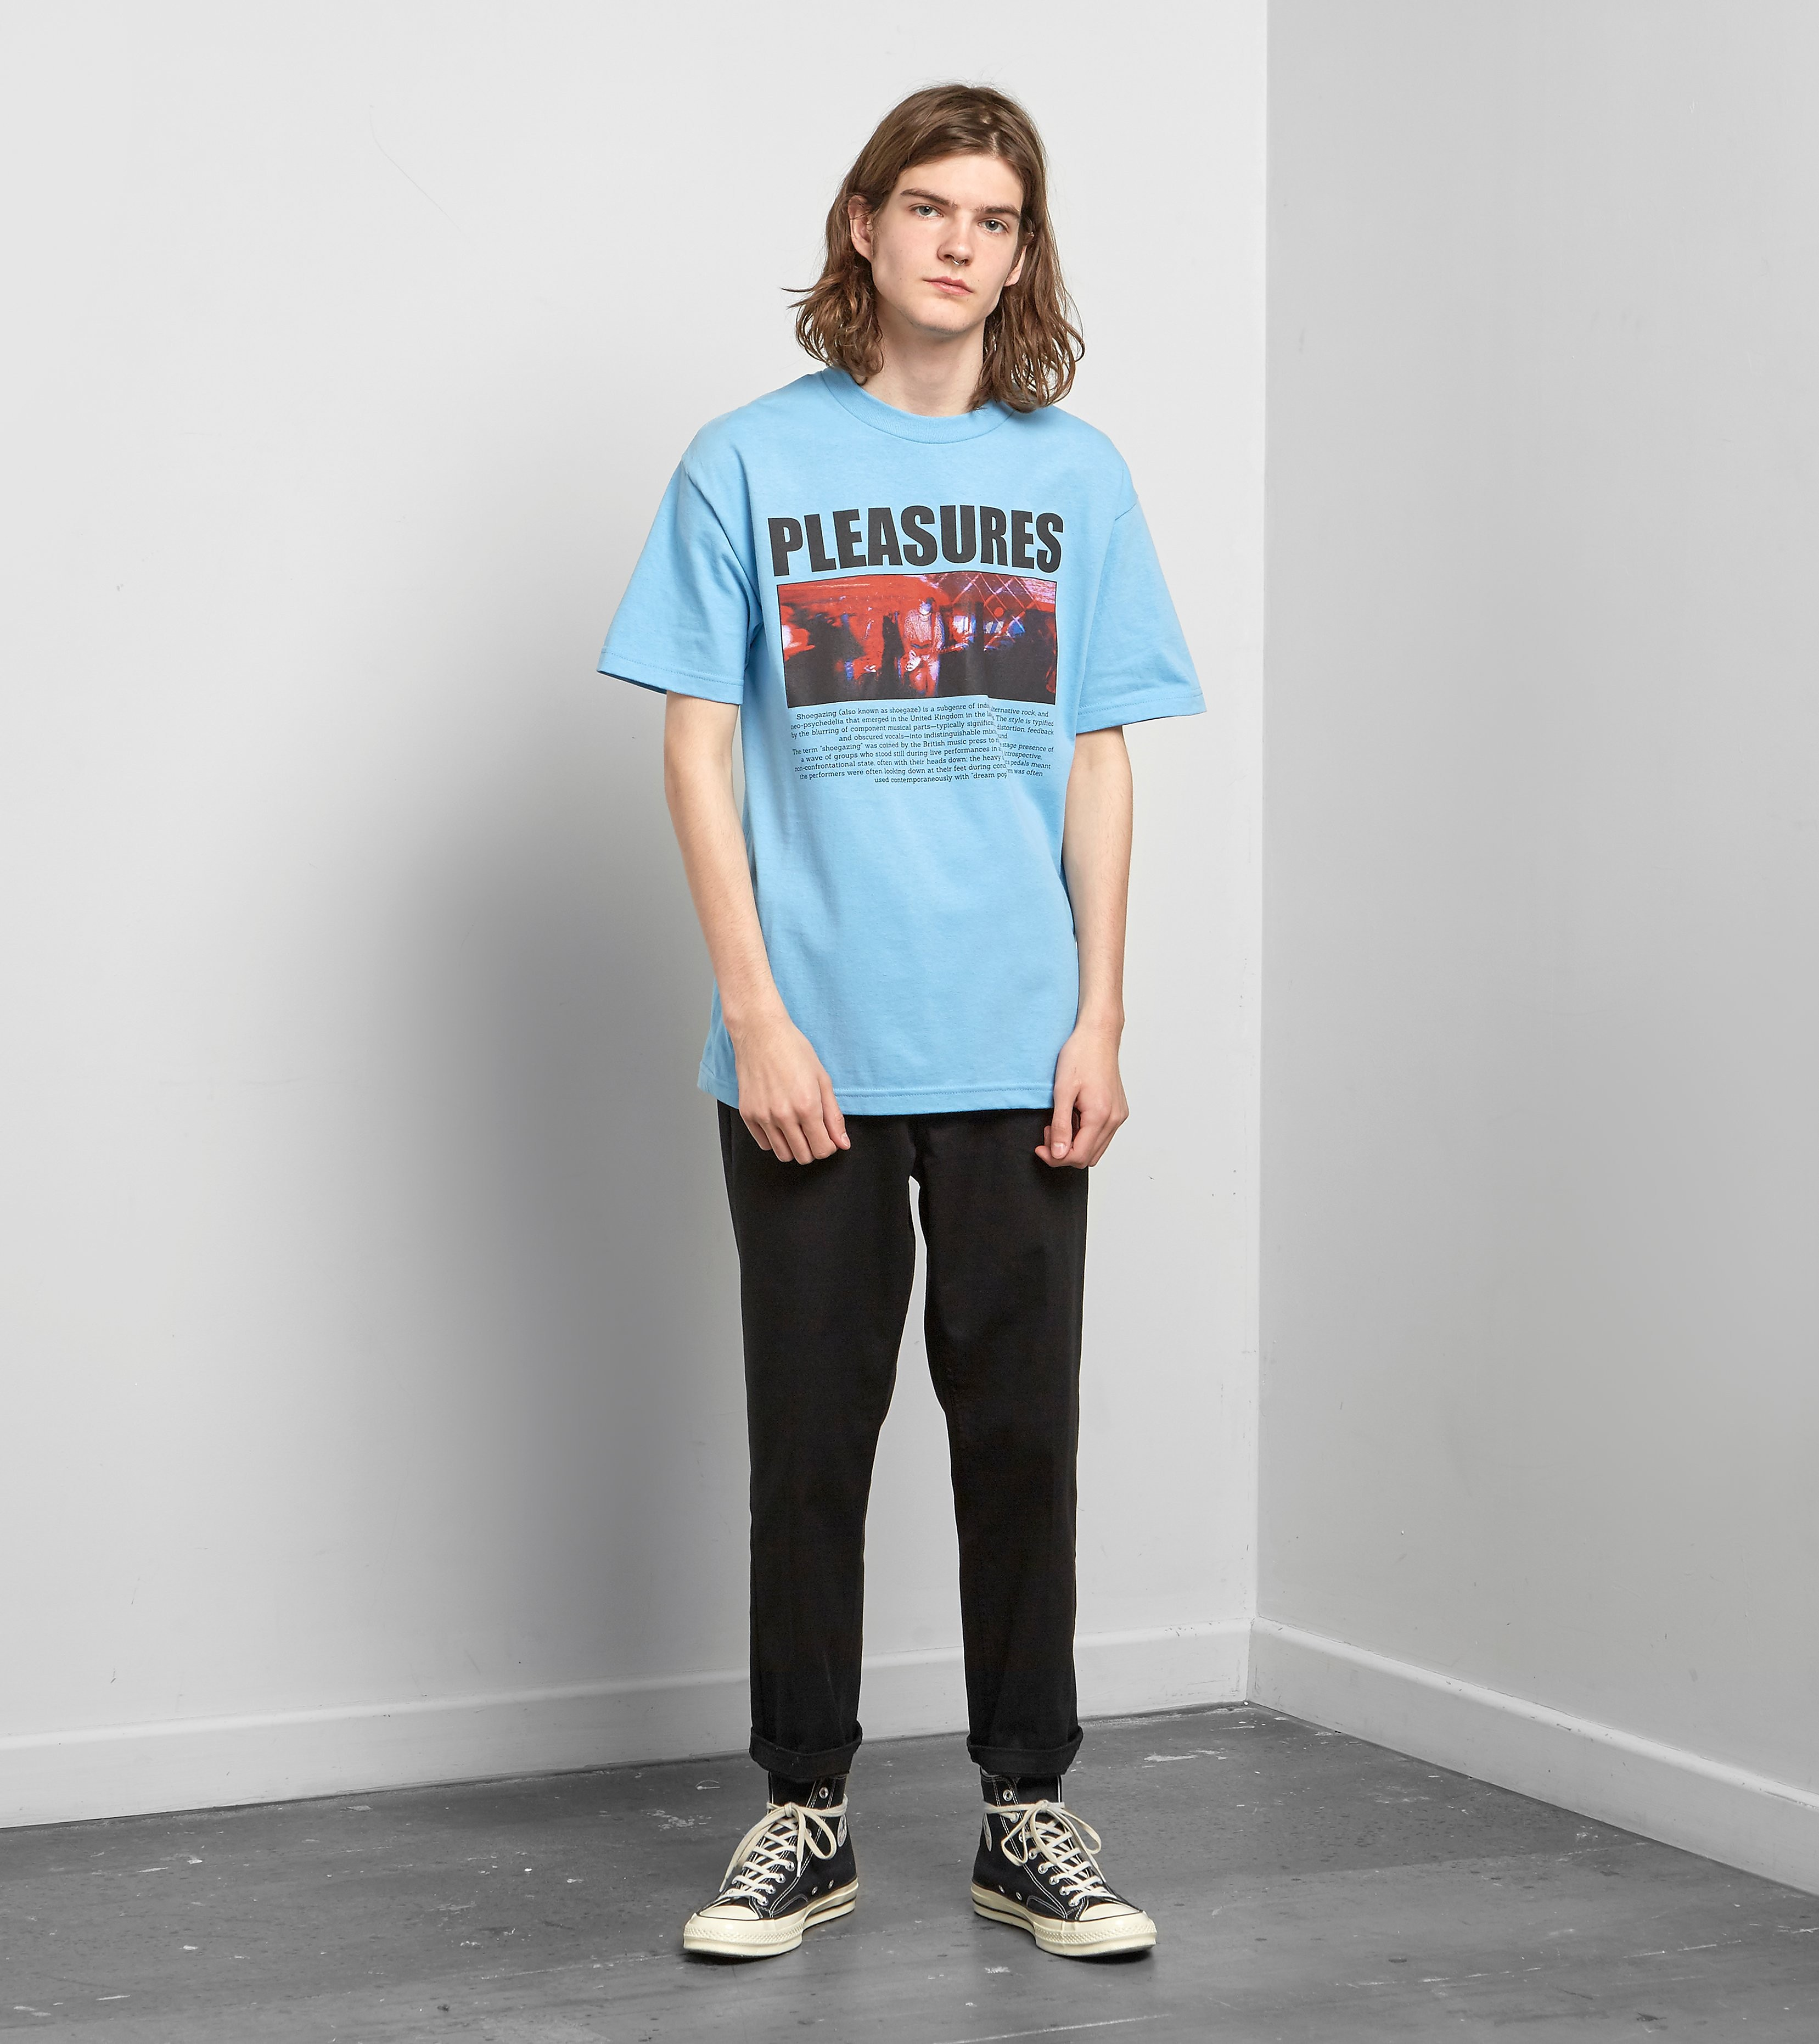 PLEASURES T-Shirt Dream Pop